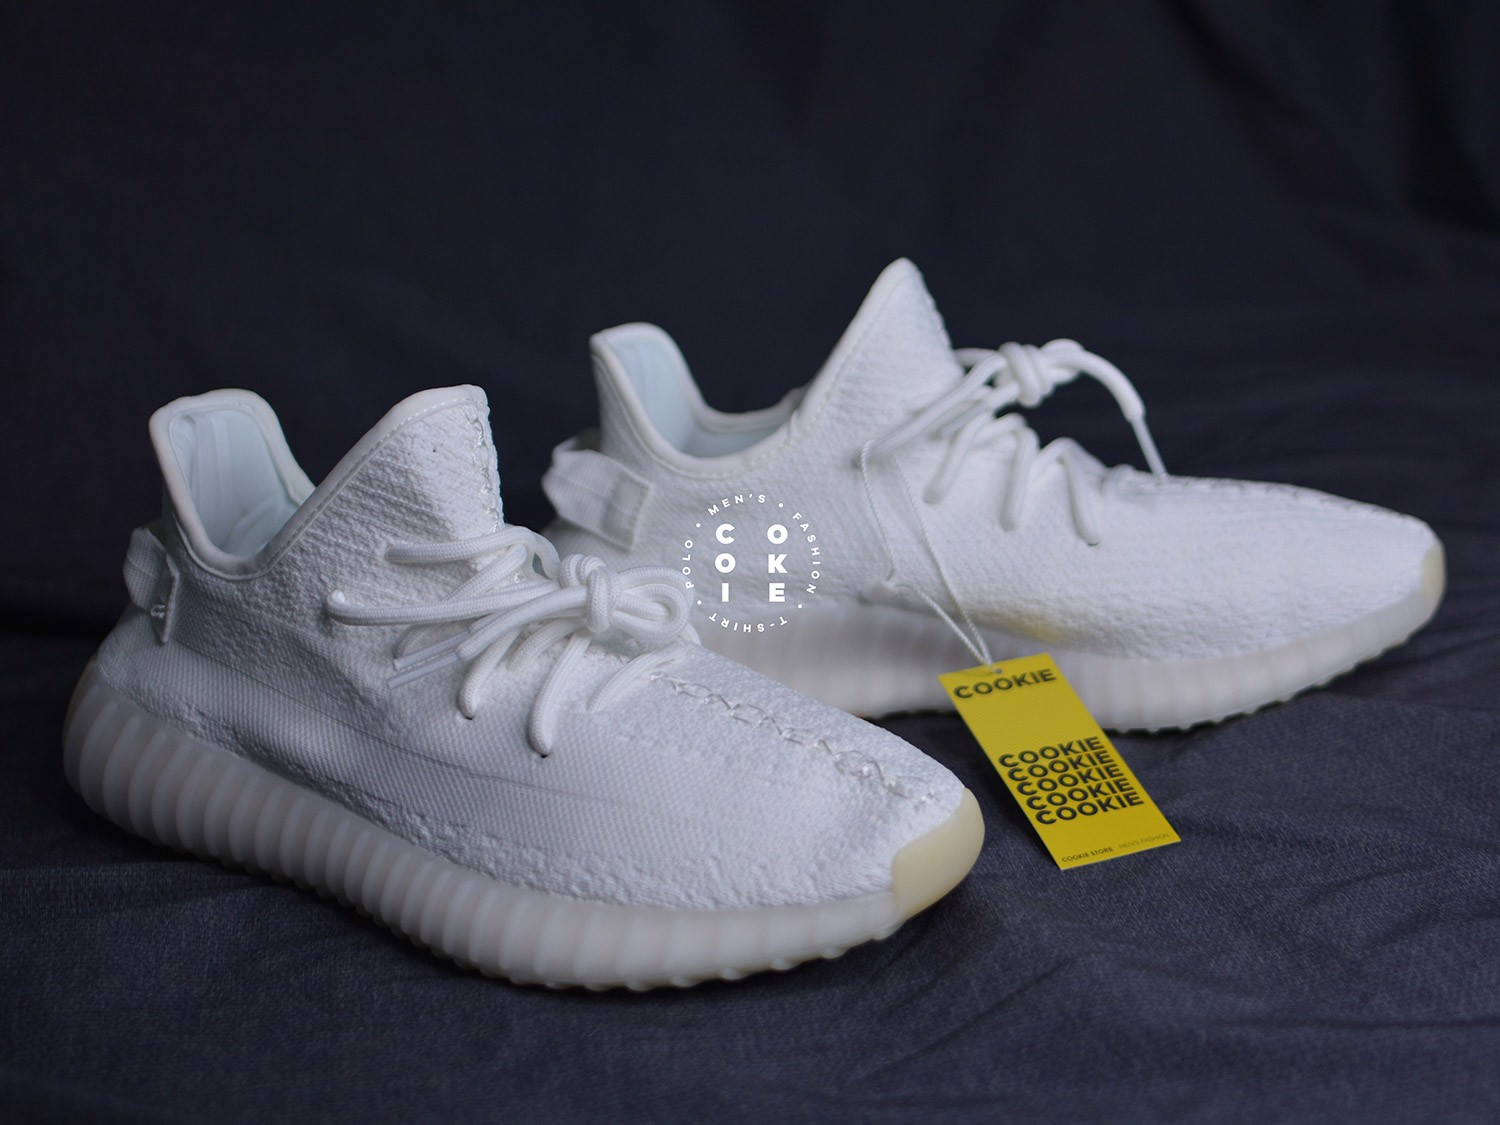 Adidas Yeezy Boost 350 V2 Cream Triple White CP9366 Size 10